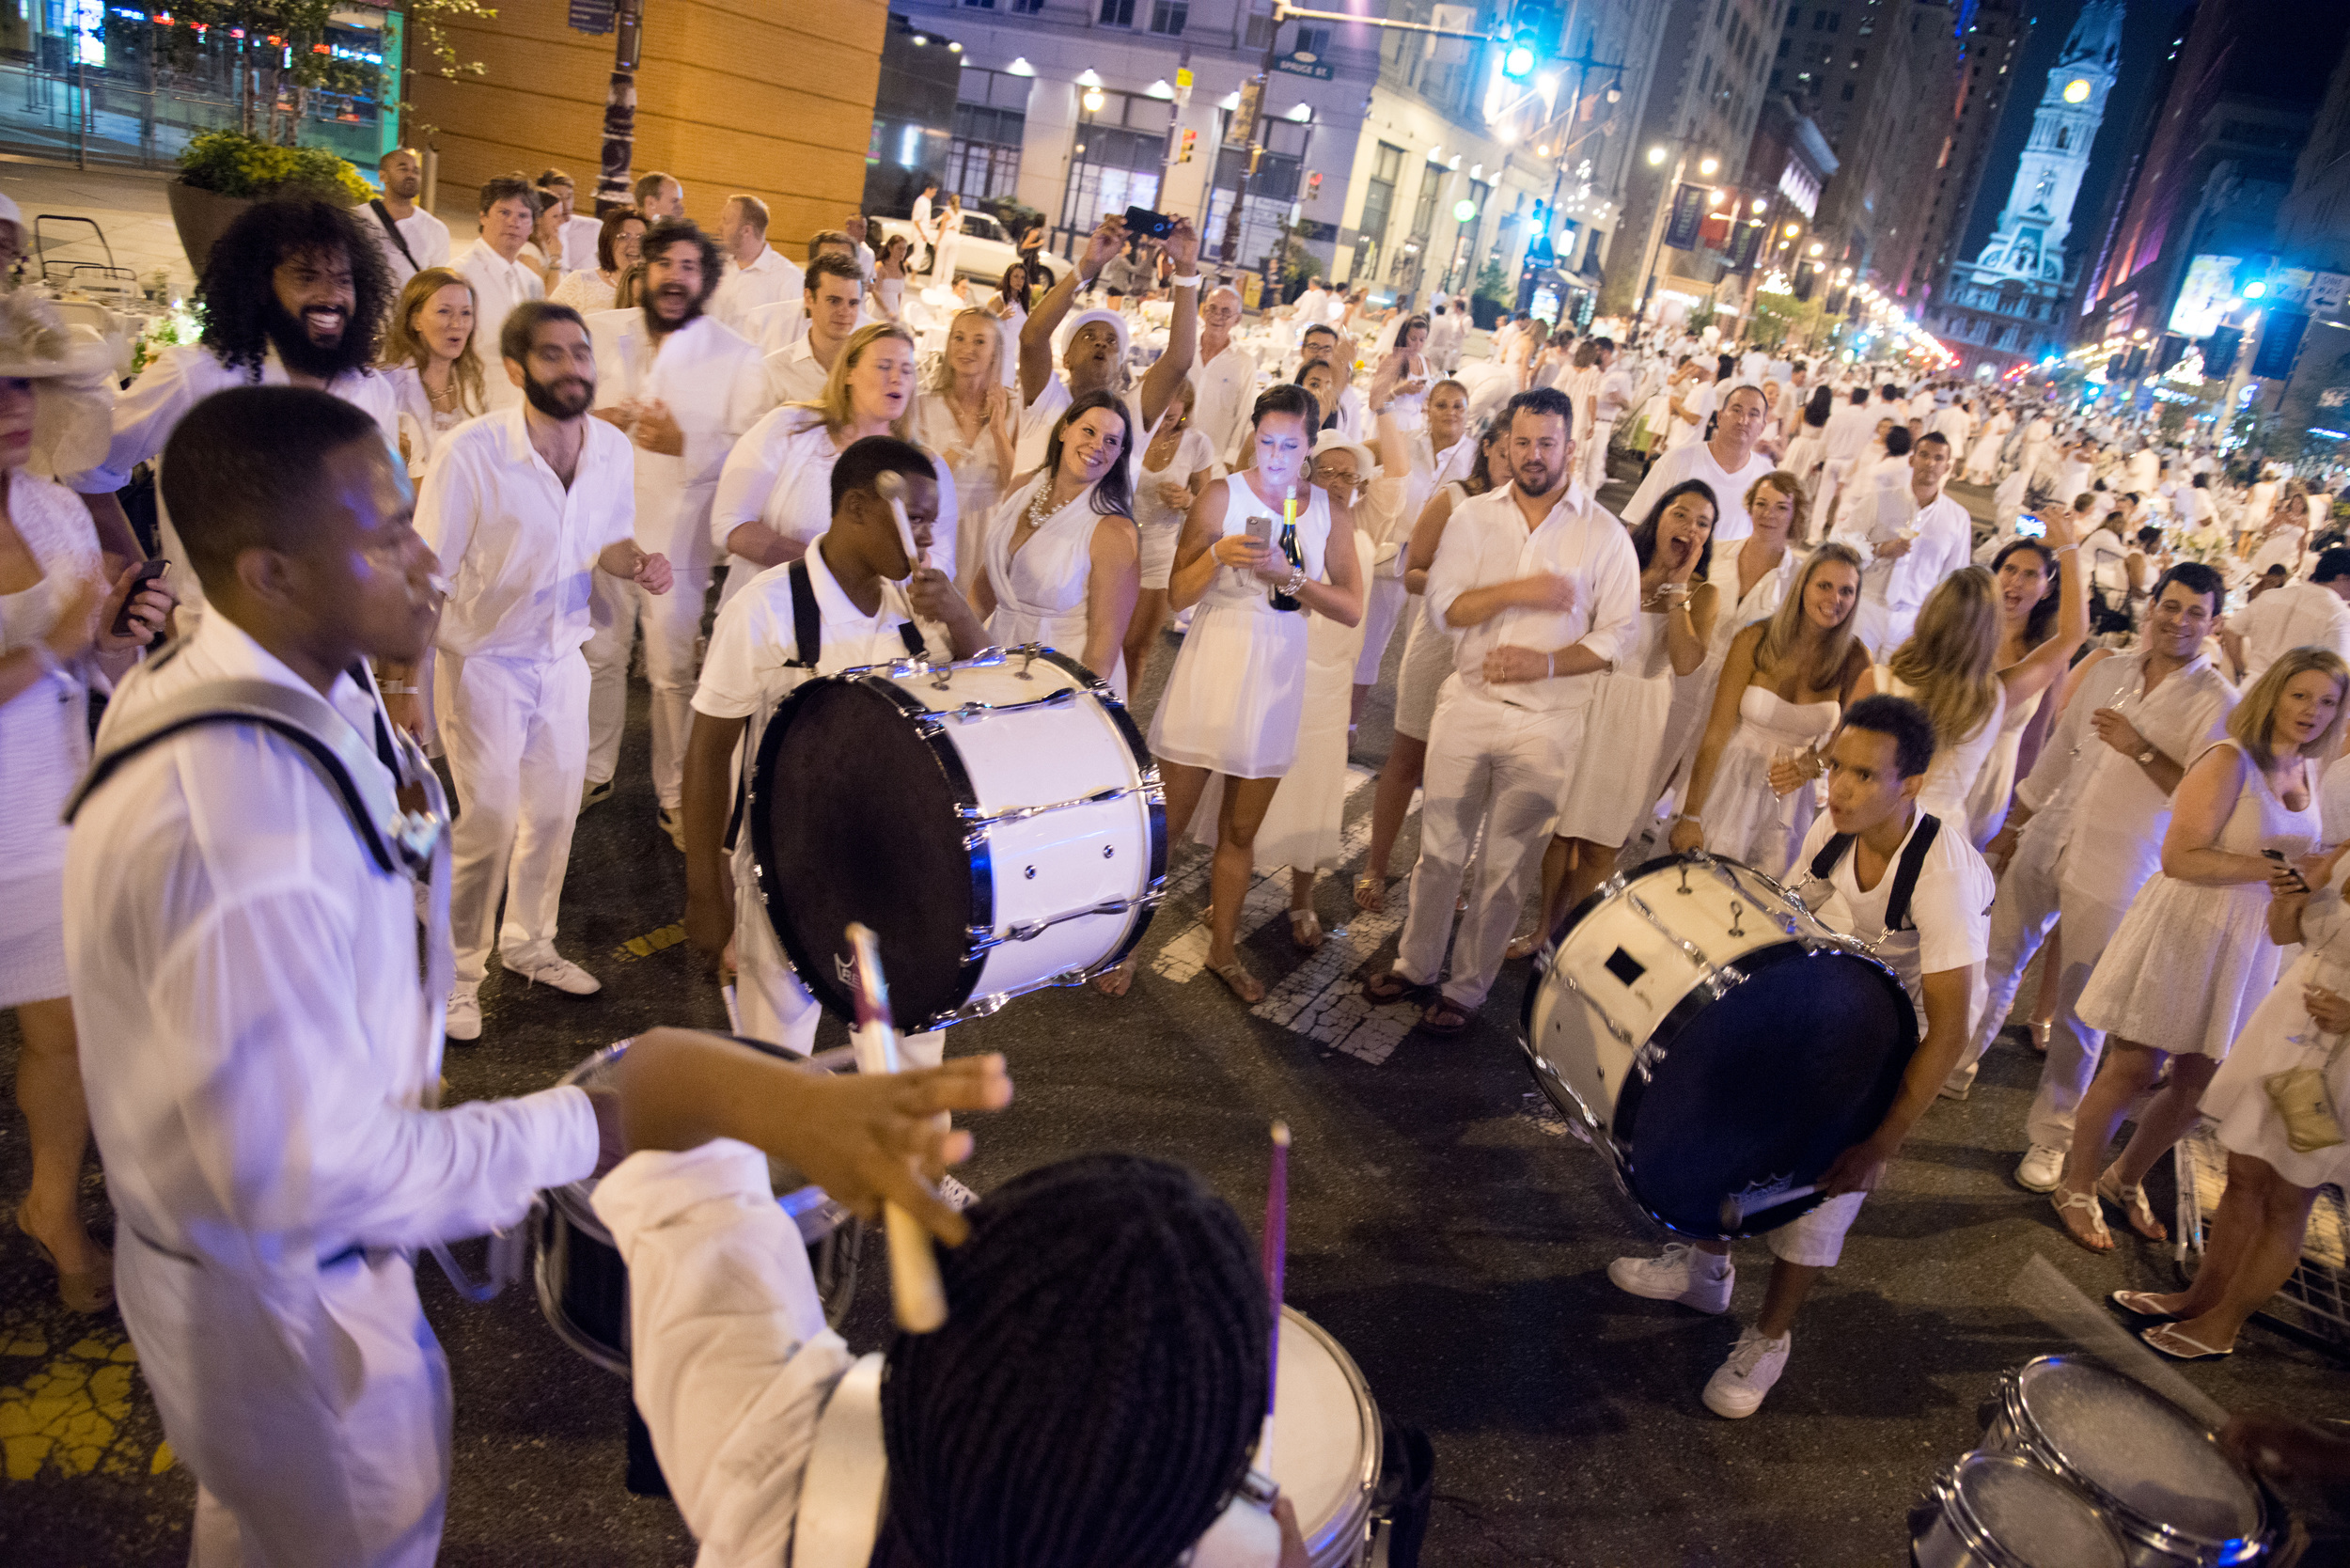 diner en blanc philadelphia, philadelphia, diner en blanc, party white, pop-up, picnic